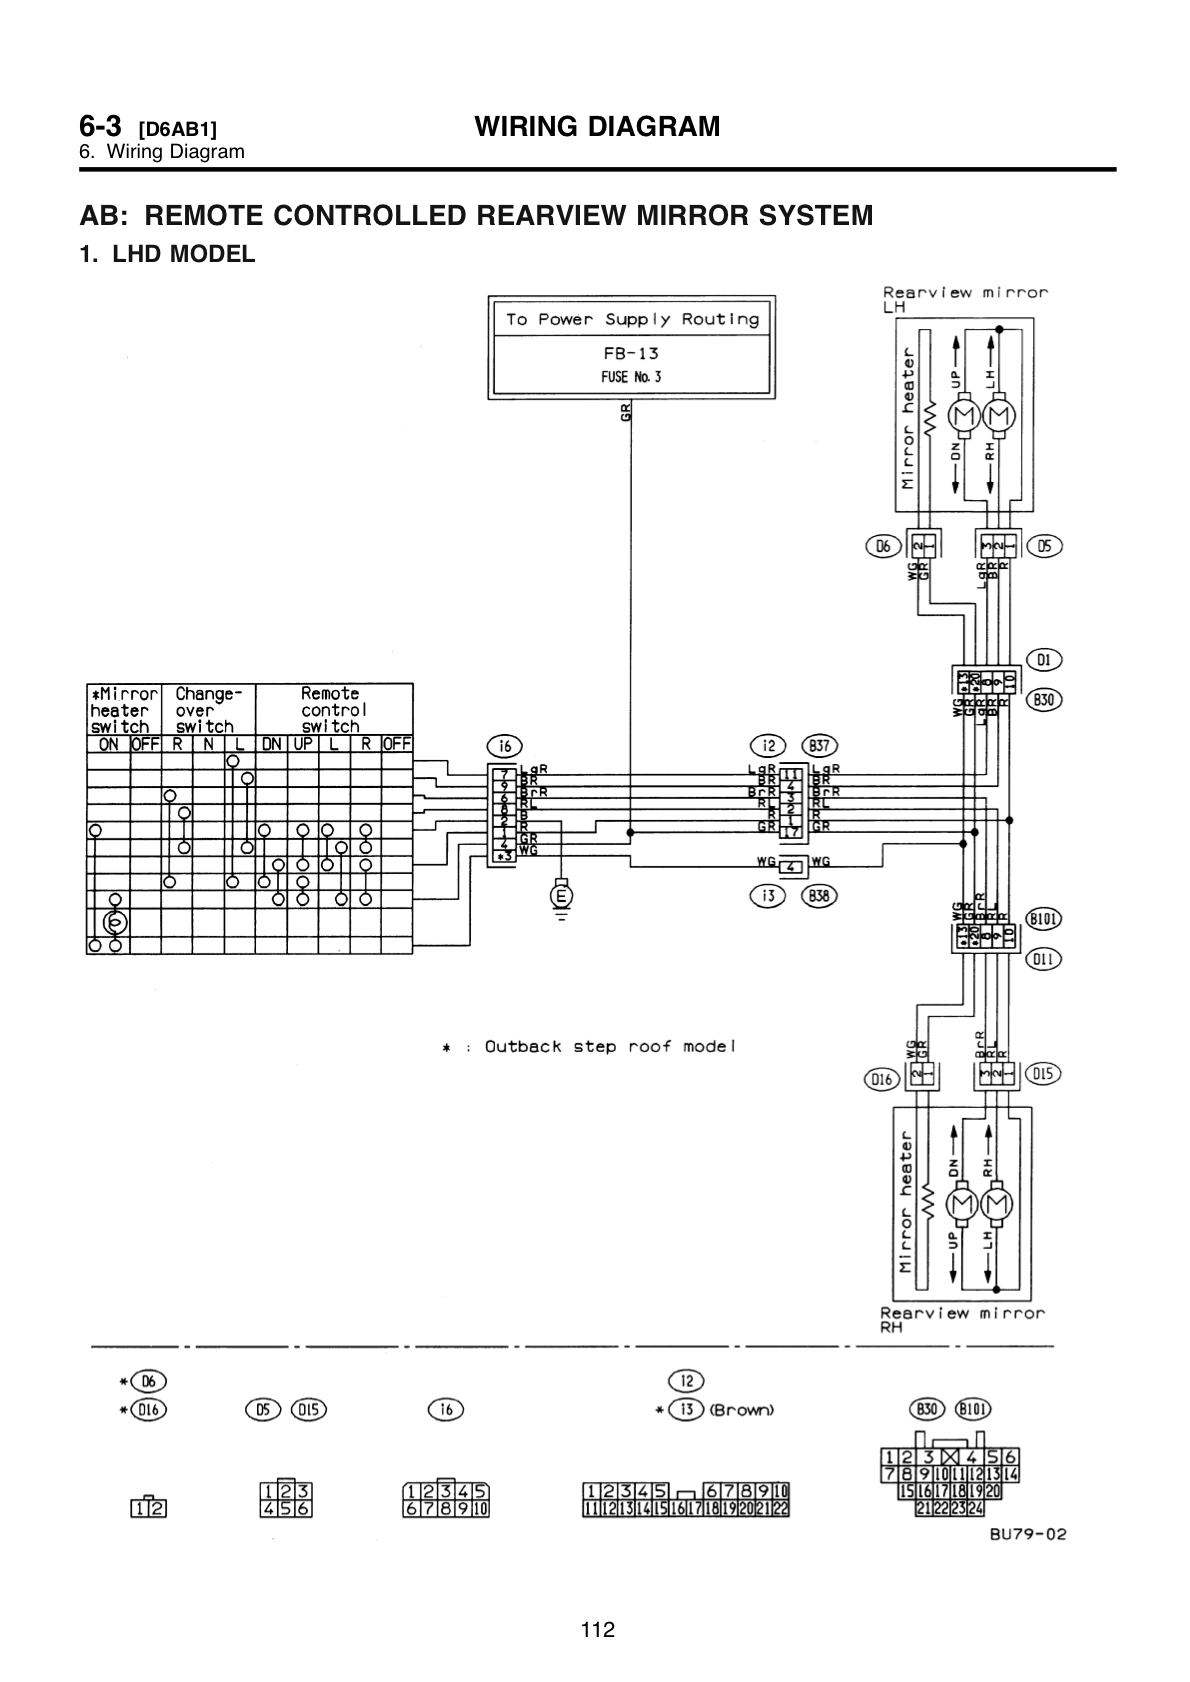 hight resolution of 08 subaru impreza front wiper motor diagram detailed wiring diagrams chevy malibu wiper motor 08 subaru impreza front wiper motor diagram